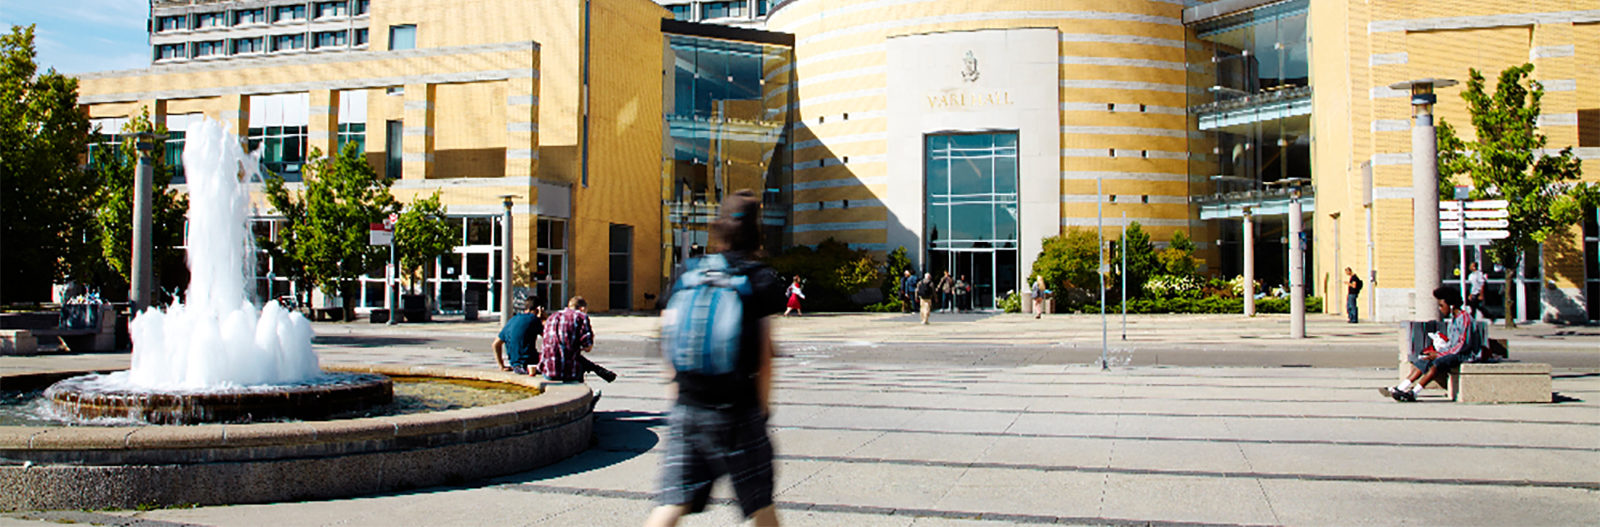 Vari Hall Sunny Day with fountain in foreground FEATURED image